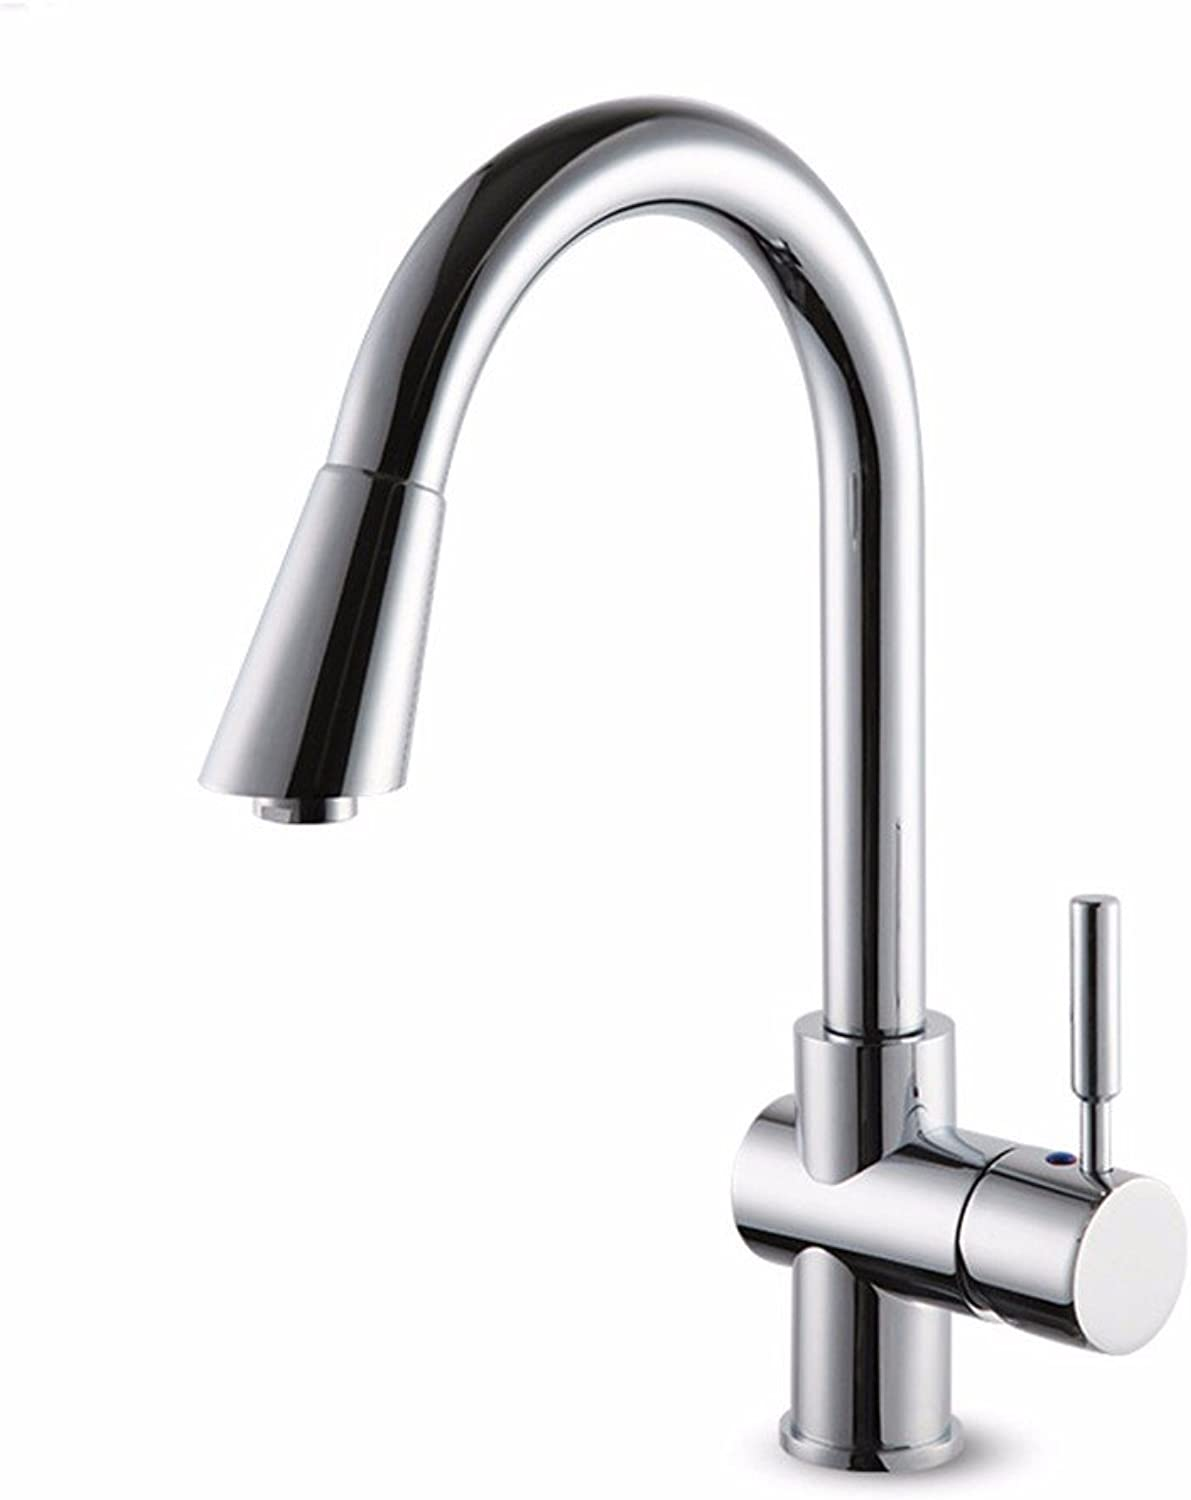 SJQKA-Hot and cold kitchen faucet, single single hole basin faucet, all copper sink faucet